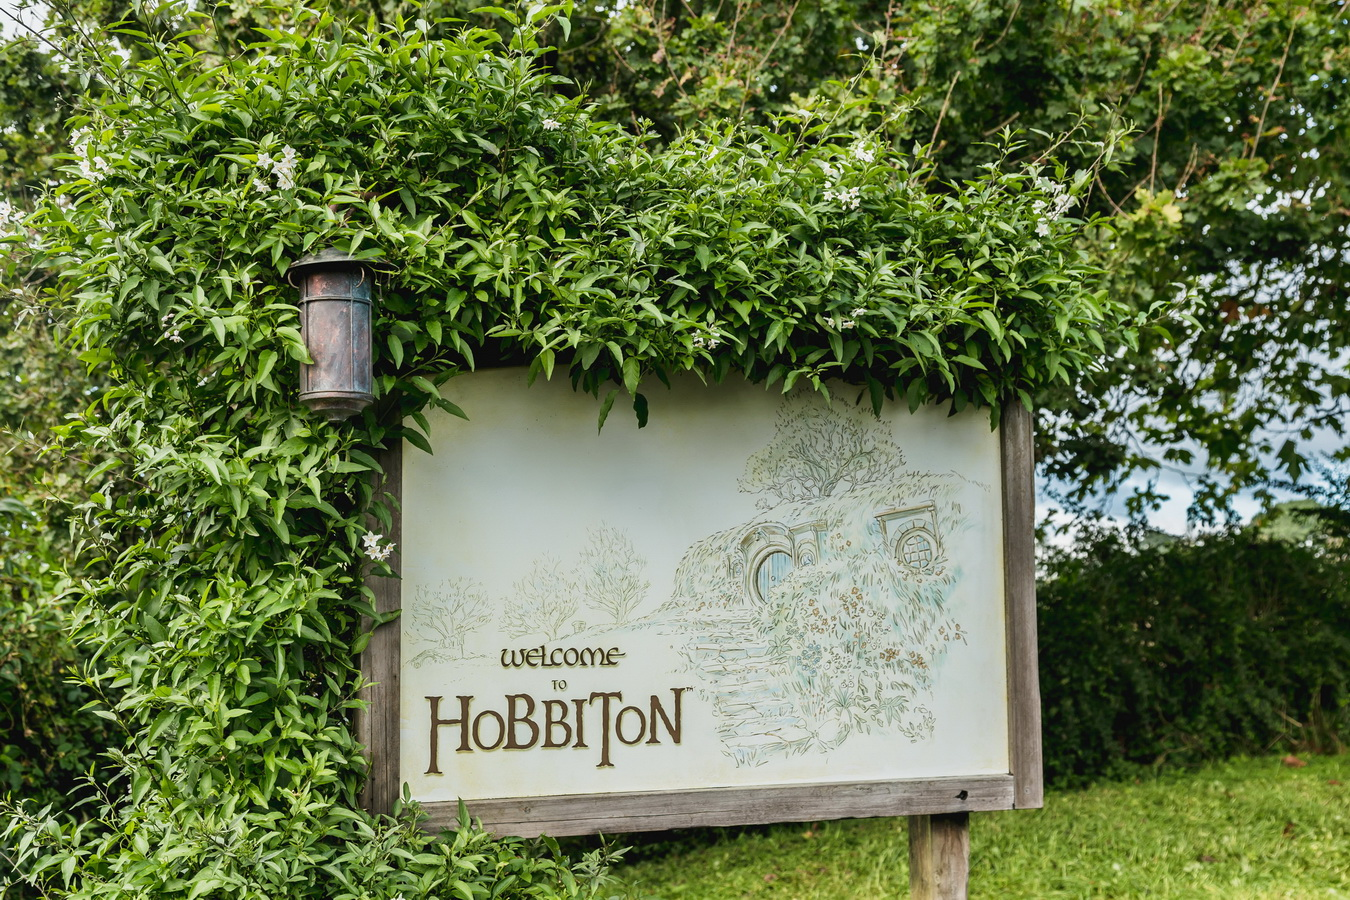 entrance sign,The Hobbiton, The Shire,Хоббитшир, Удел, Хоббитания, Заселье, Край,Matamata, North Island ,New Zealand